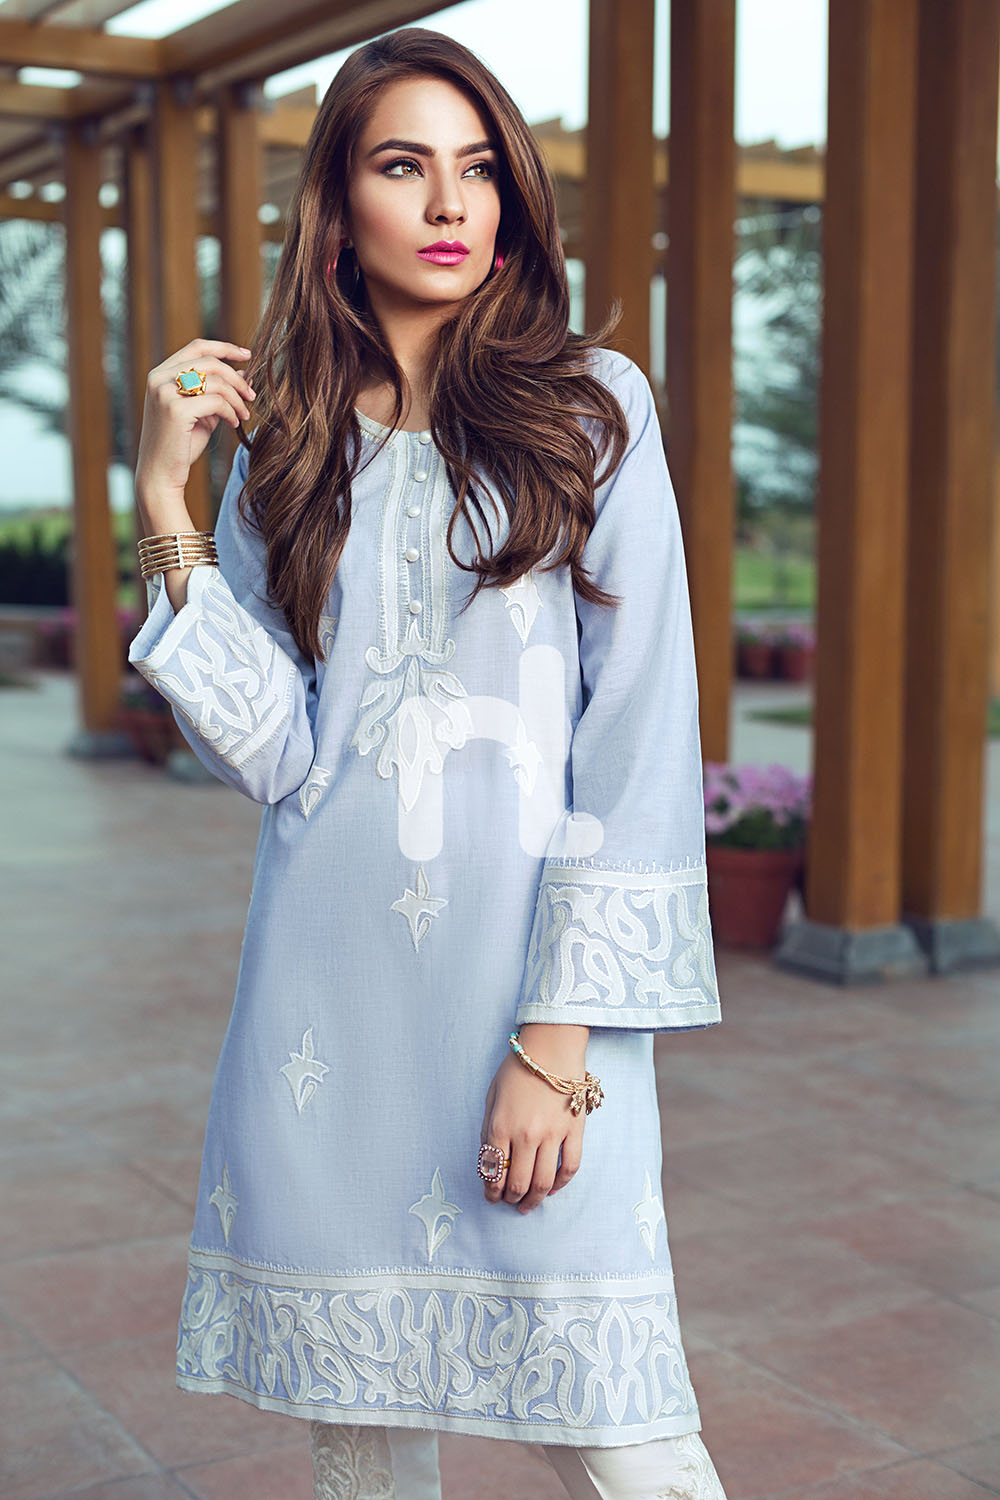 745901dc21 If you are looking for formal wear, then this classic cotton Patchwork  going to be a glamorous addition to your wardrobe. You can have this dress  at PKR ...